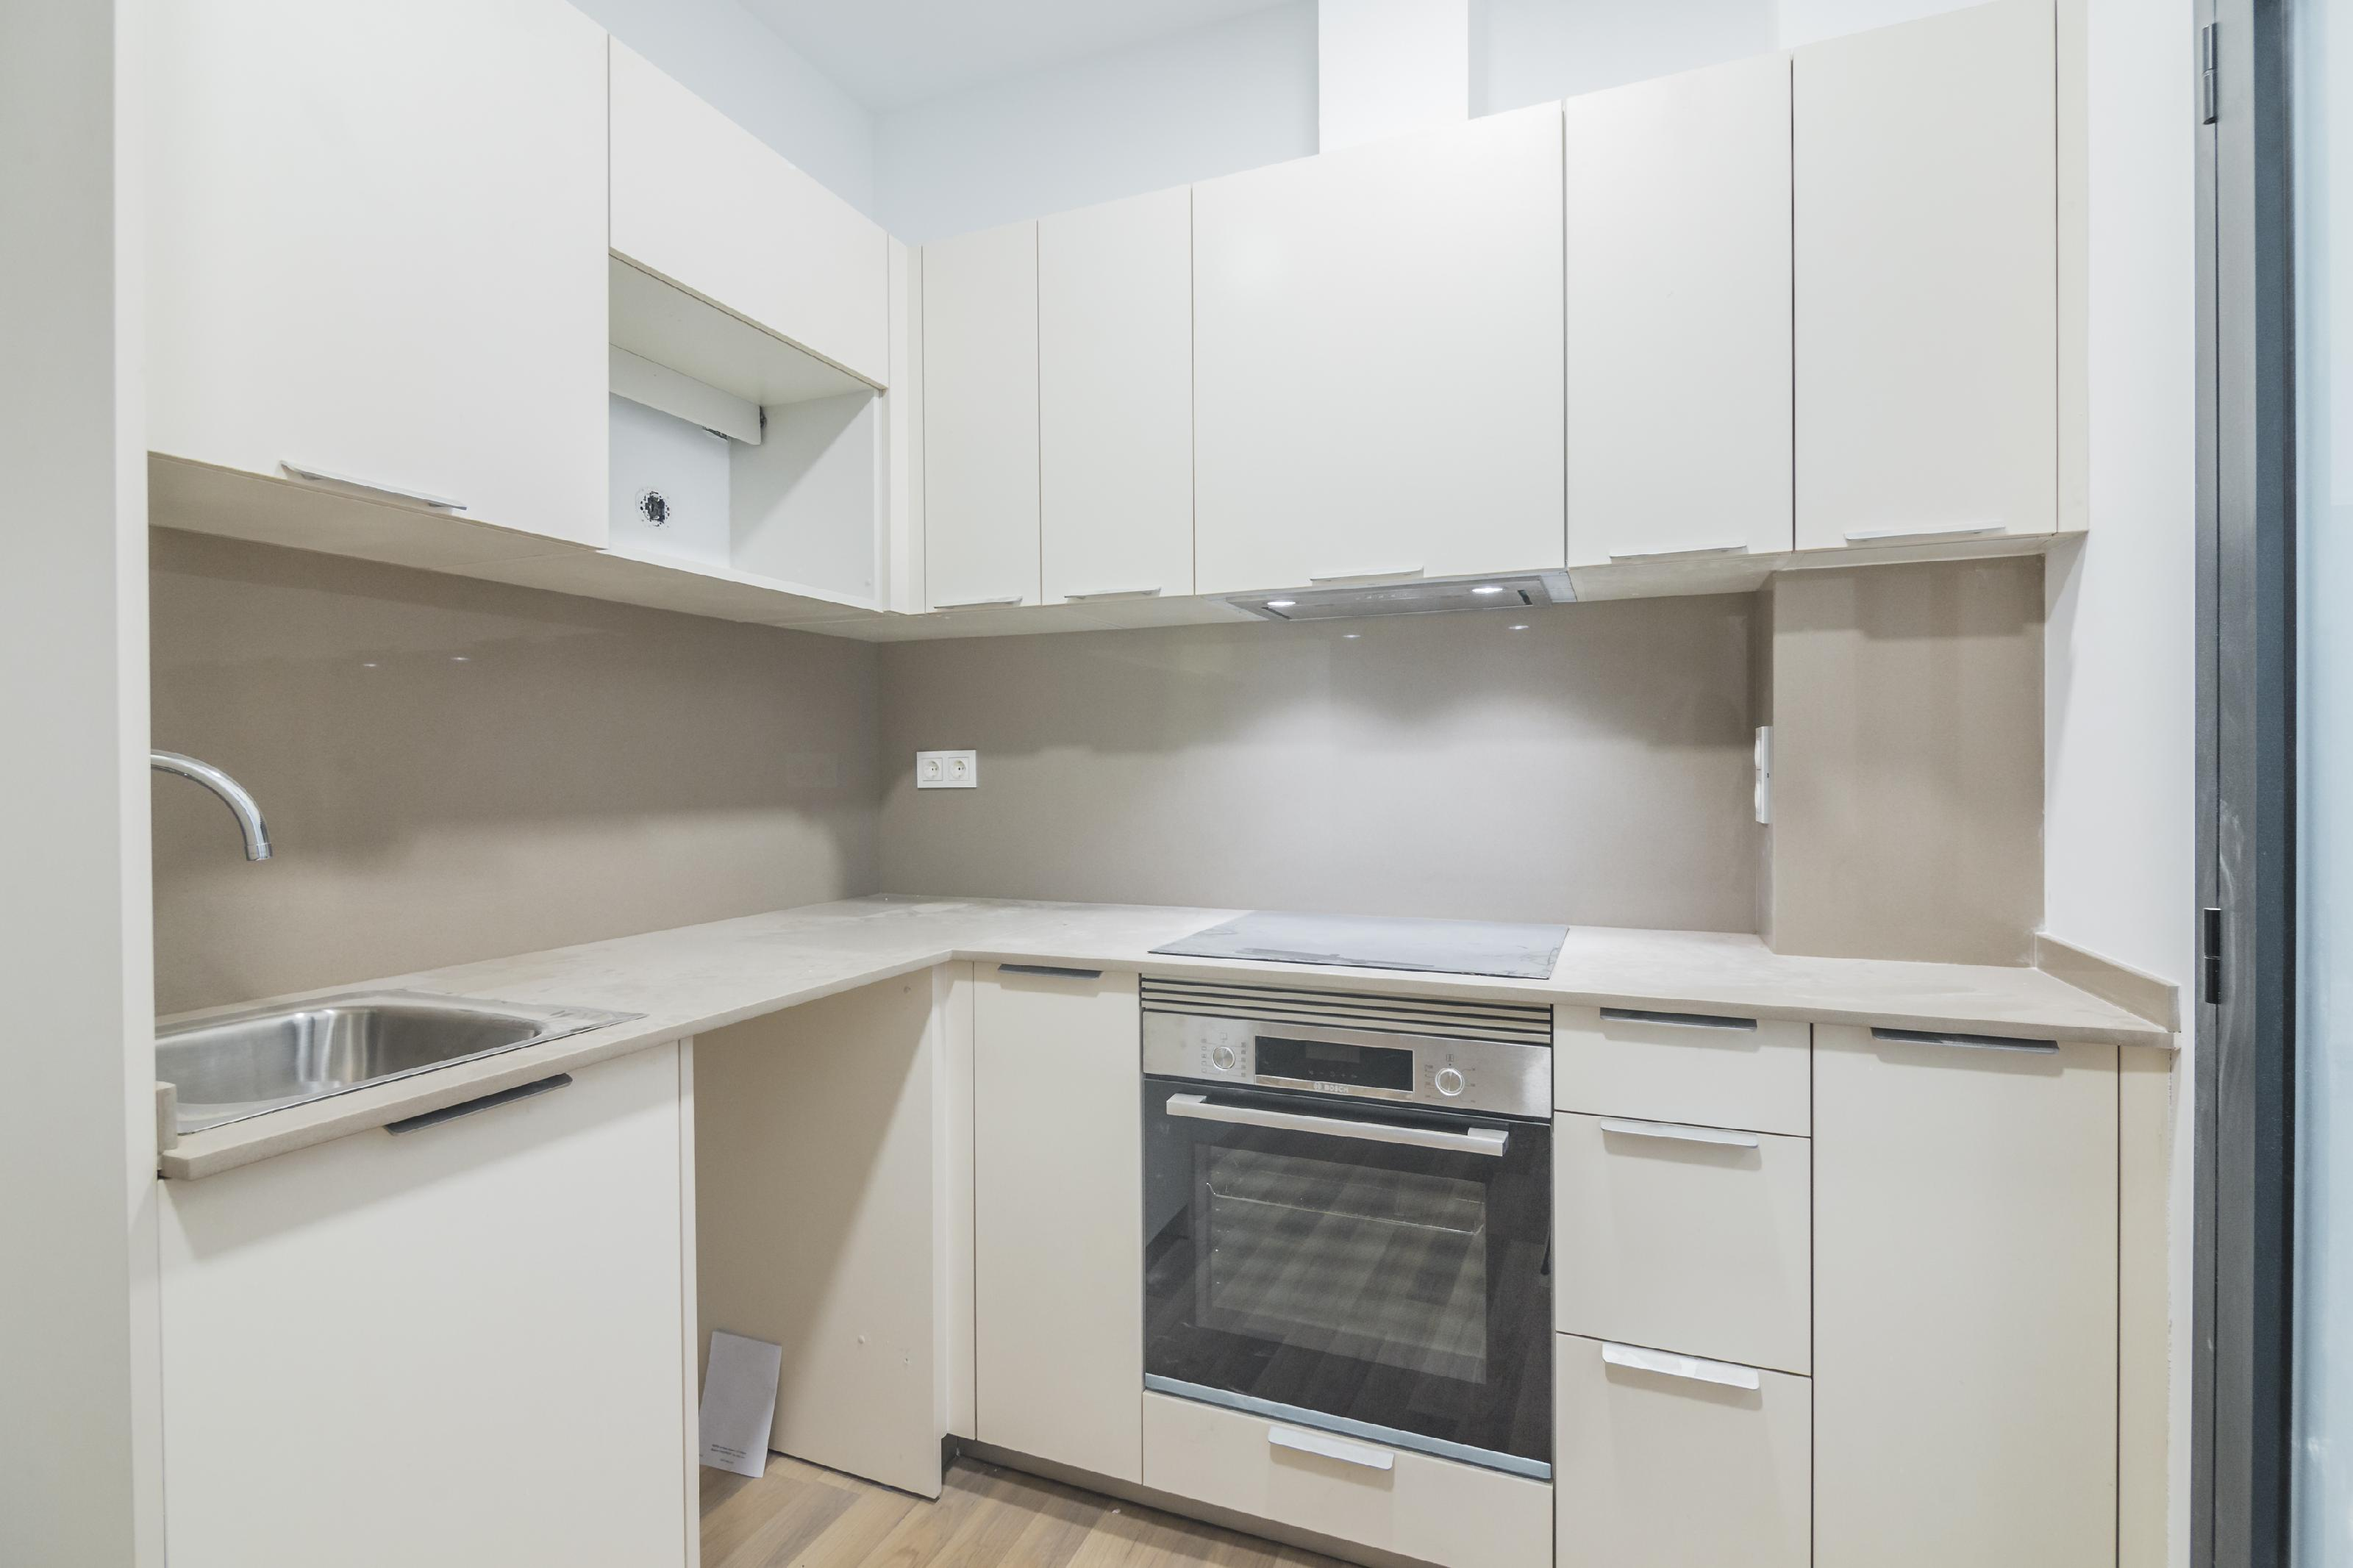 220649 Apartment for sale in Sarrià-Sant Gervasi, Sant Gervasi-Galvany 2